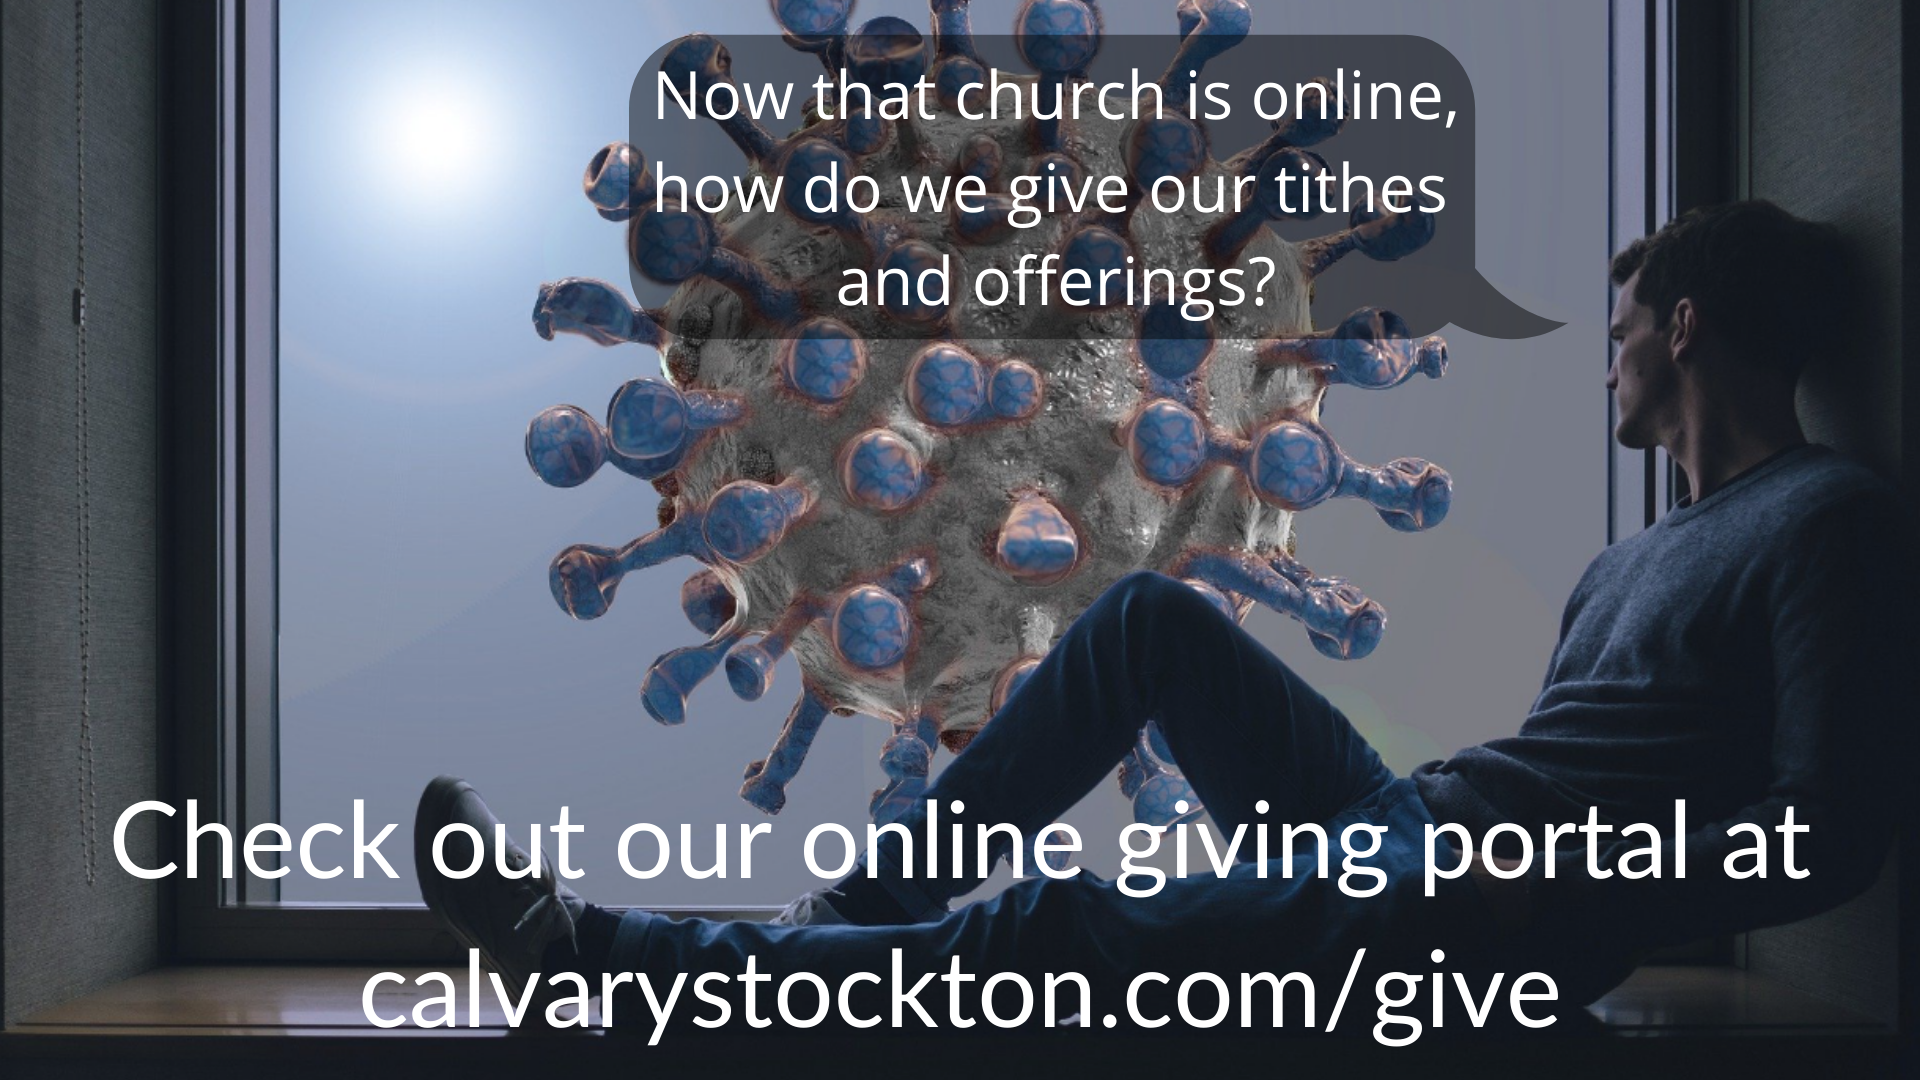 Now that church is online, how do our tithes and offering_